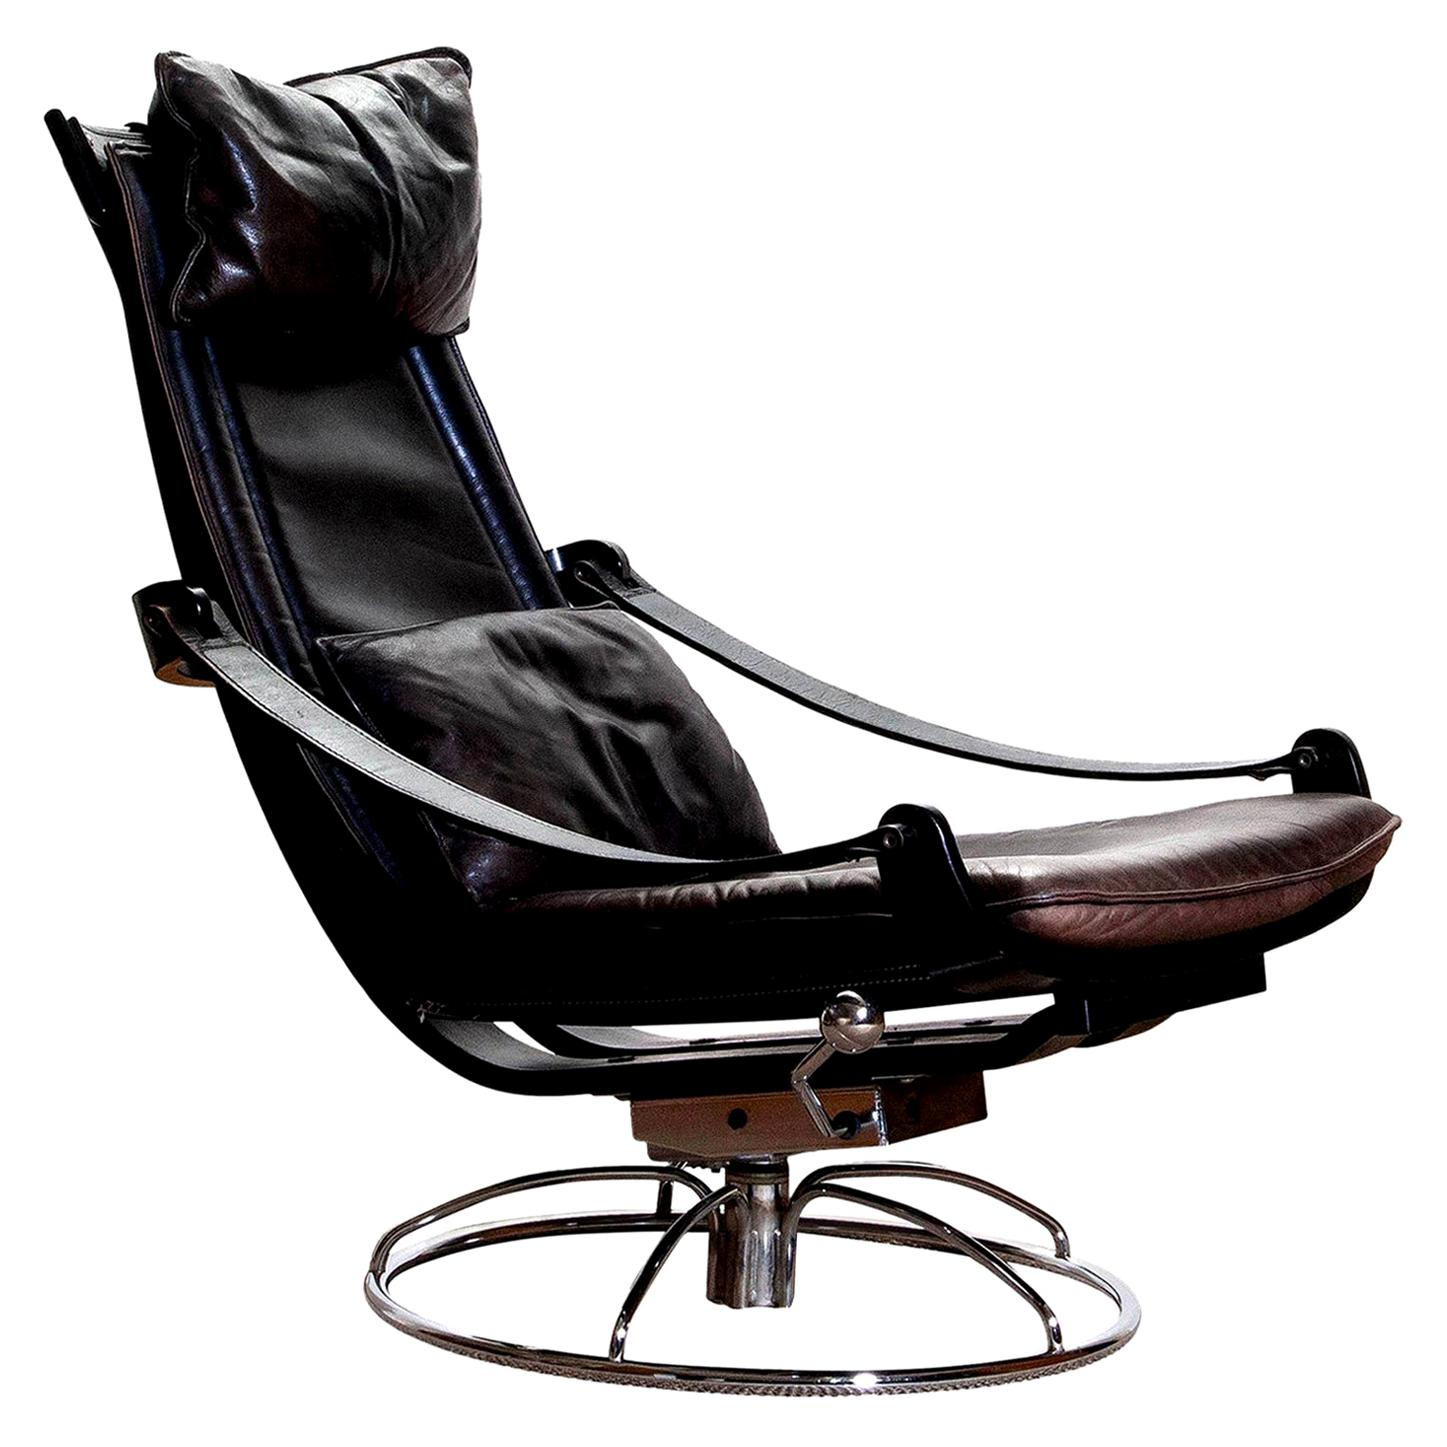 1970s Artistic Leather Swivel or Relax Chair by Ake Fribytter for Nelo, Sweden